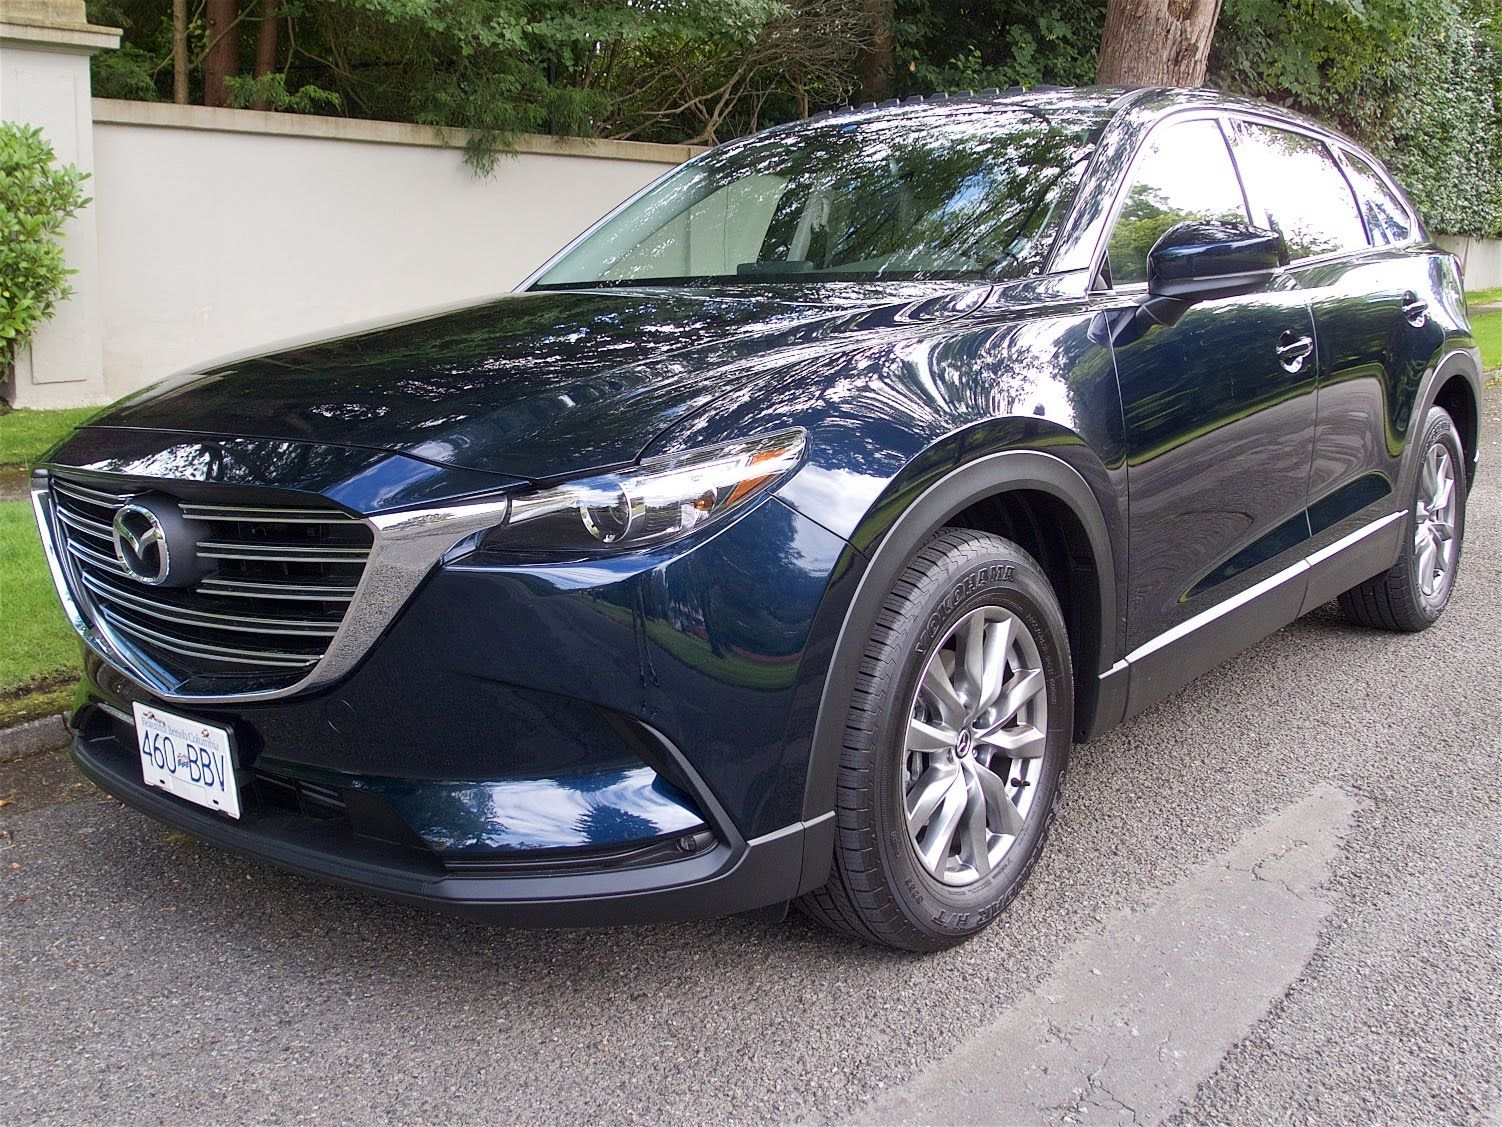 2017 Mazda Cx 9 Review Look Out Honda Pilot And Toyota Highlander Mazda Cx 9 Mazda Honda Pilot